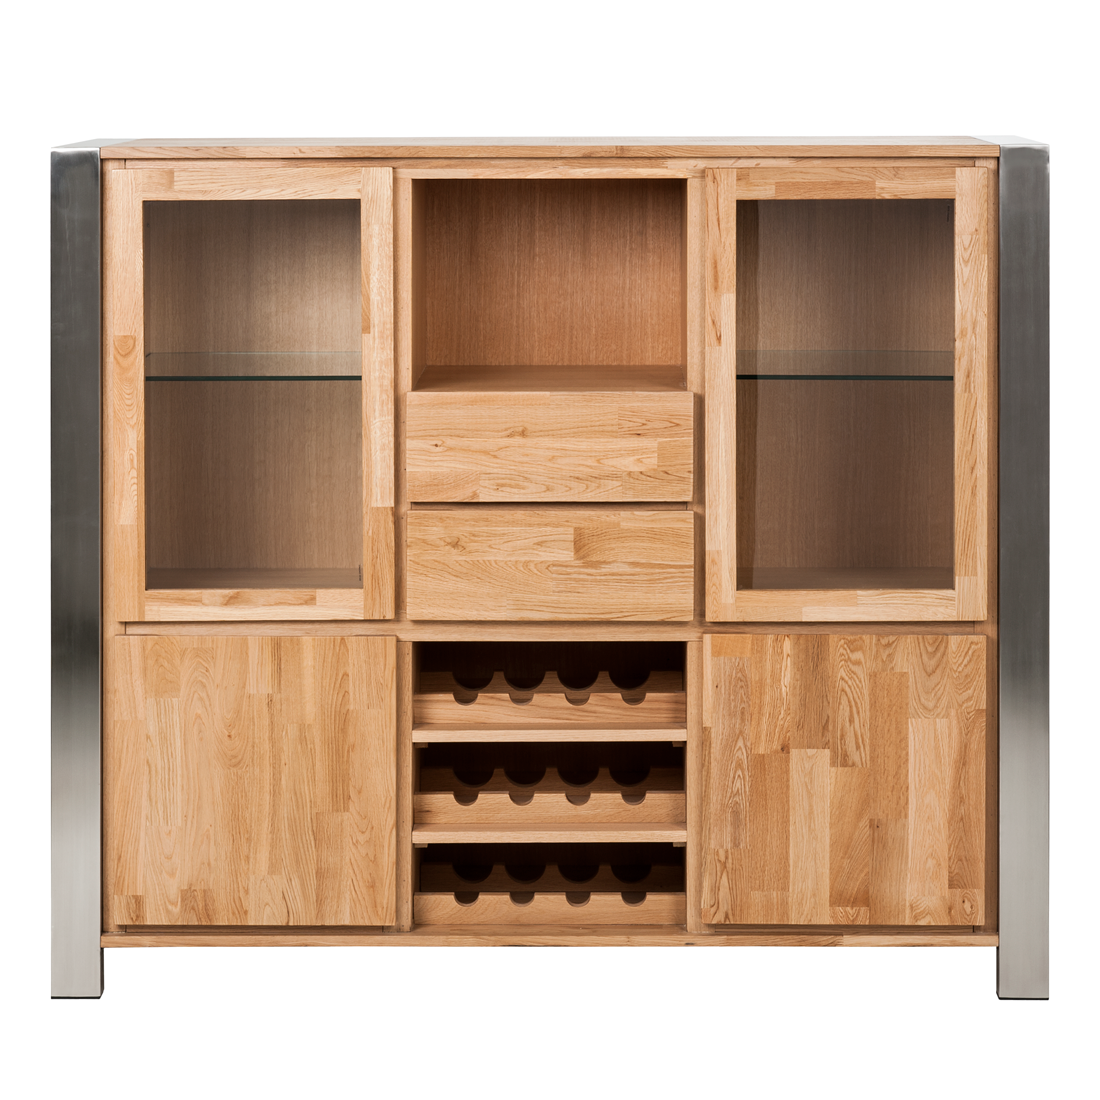 weinbar eiche massivholz edelstahl weinregal weinschrank wein regal schrank neu ebay. Black Bedroom Furniture Sets. Home Design Ideas